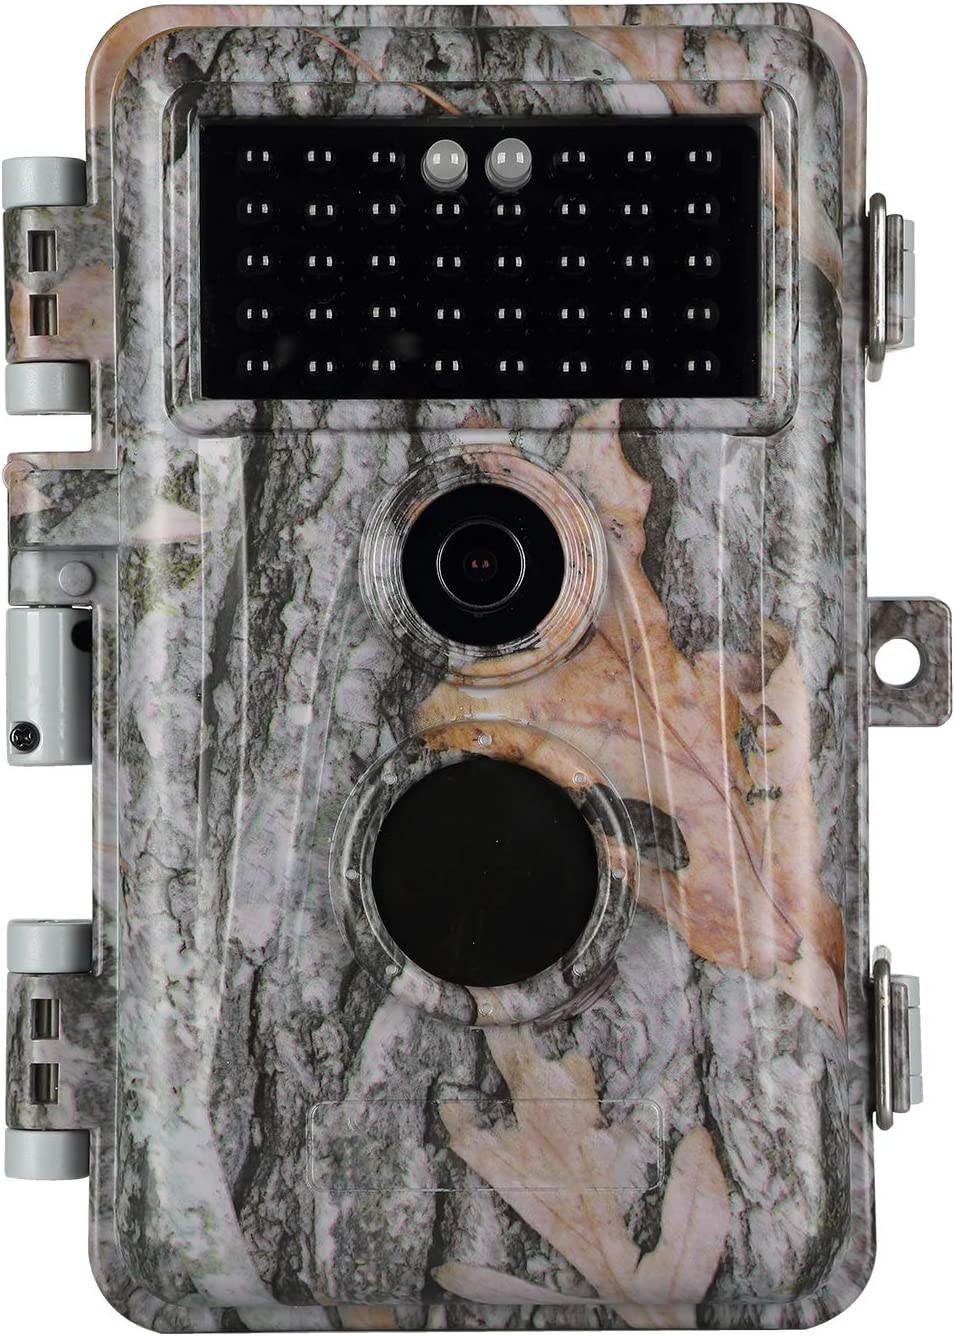 Folgtek Night Vision Trail Camera Camo Stealth Deer Hunting Cam 20MP Photo 1080P H.264 Video IP66 Waterproof & Password Protected for Outdoor Wildlife Hunting and Home & Yard Security Surveillance